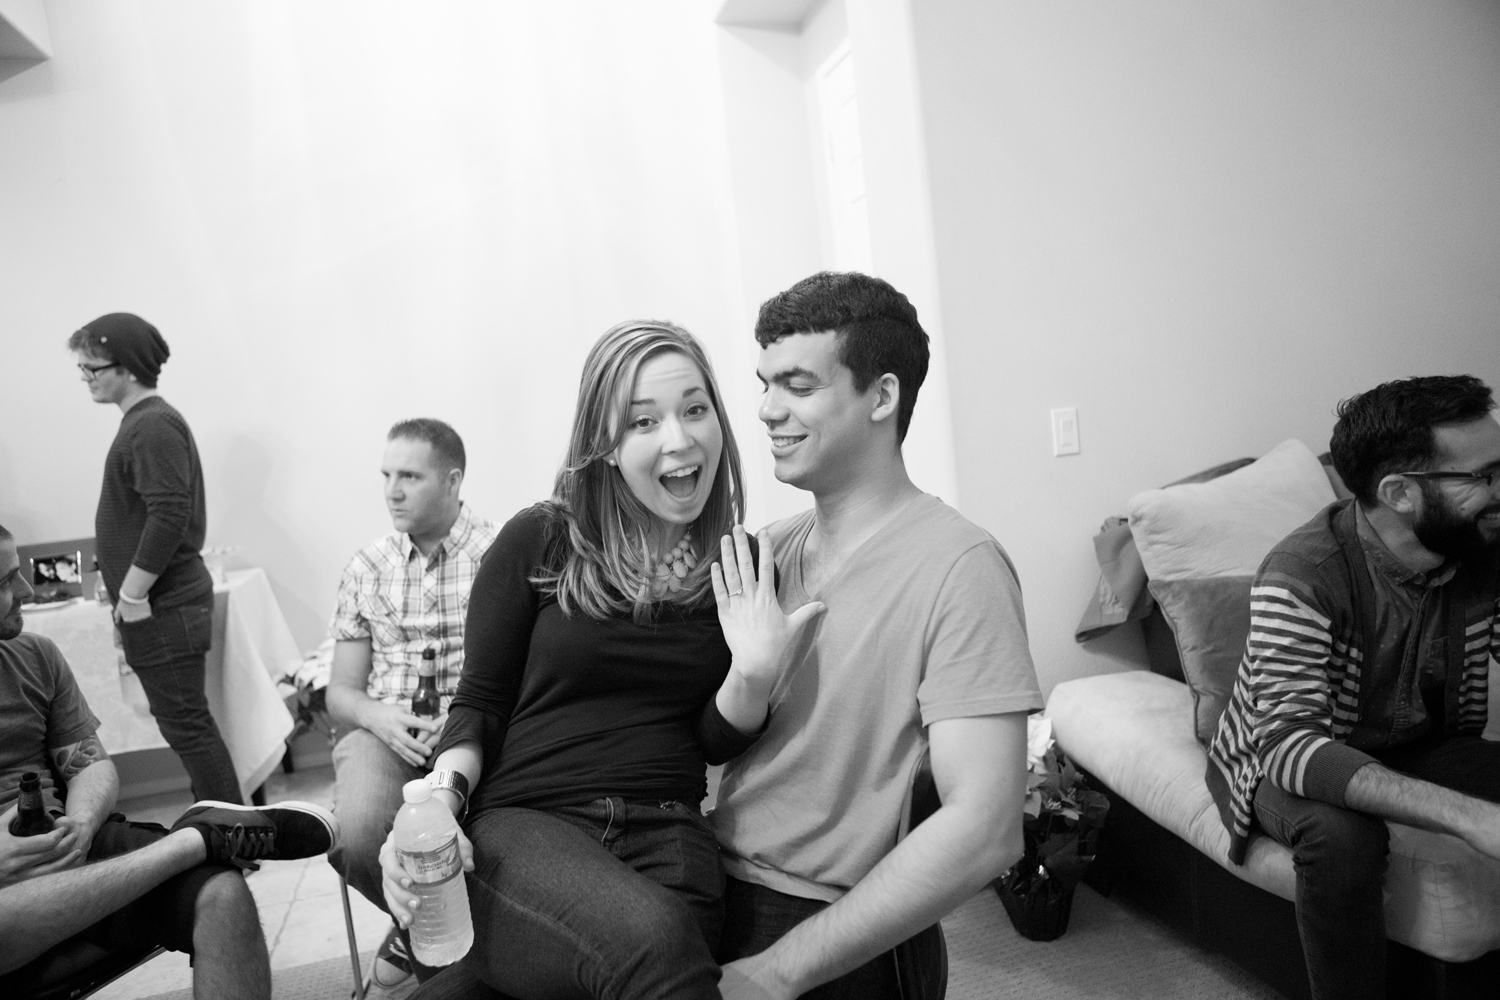 engagement-video-ideas_cute-marriage-proposal-ideas_41